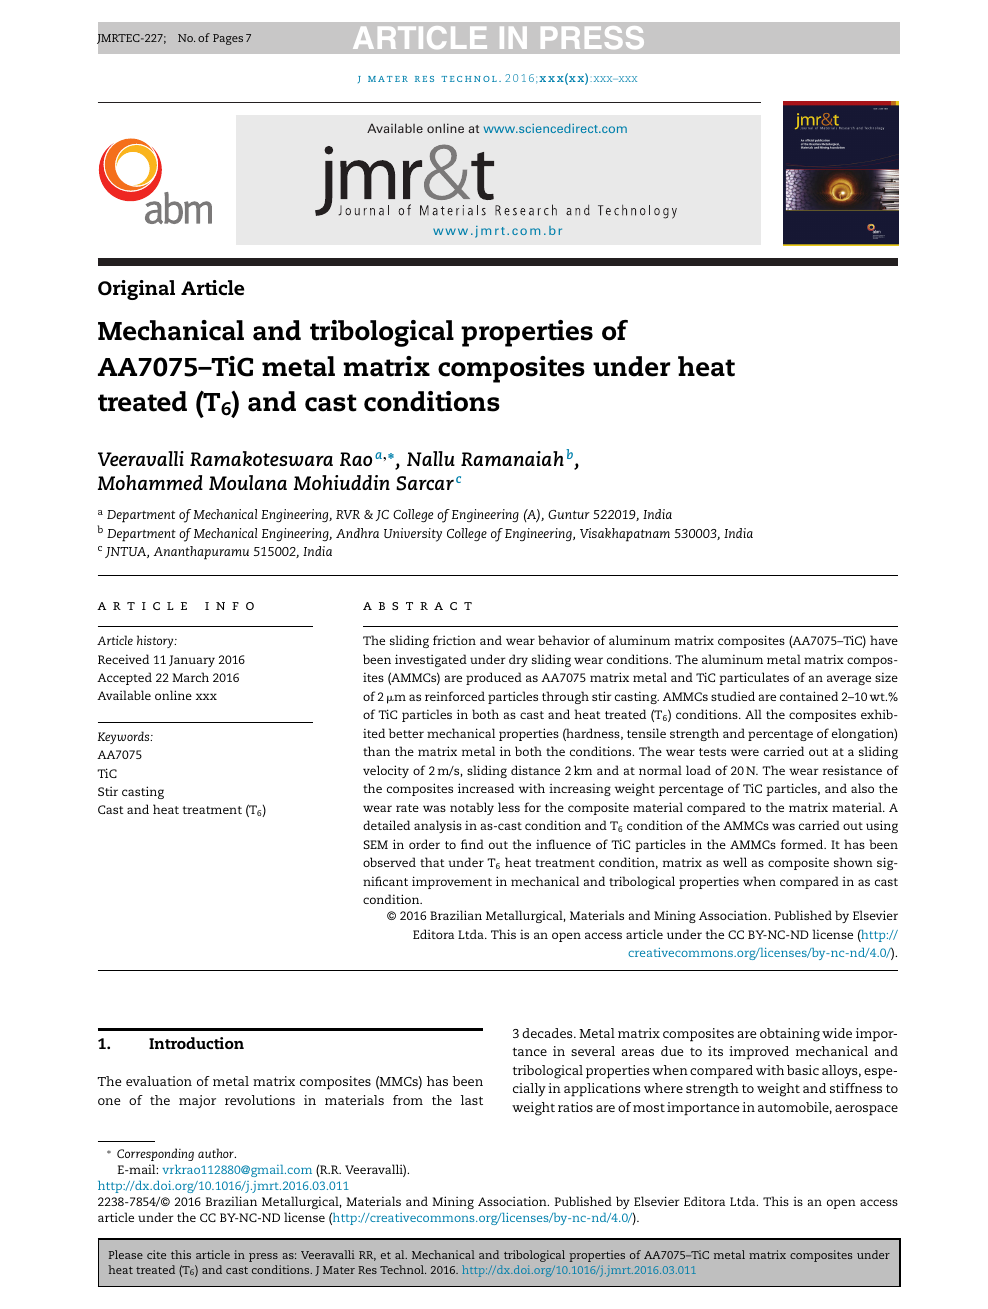 Mechanical and tribological properties of AA7075–TiC metal